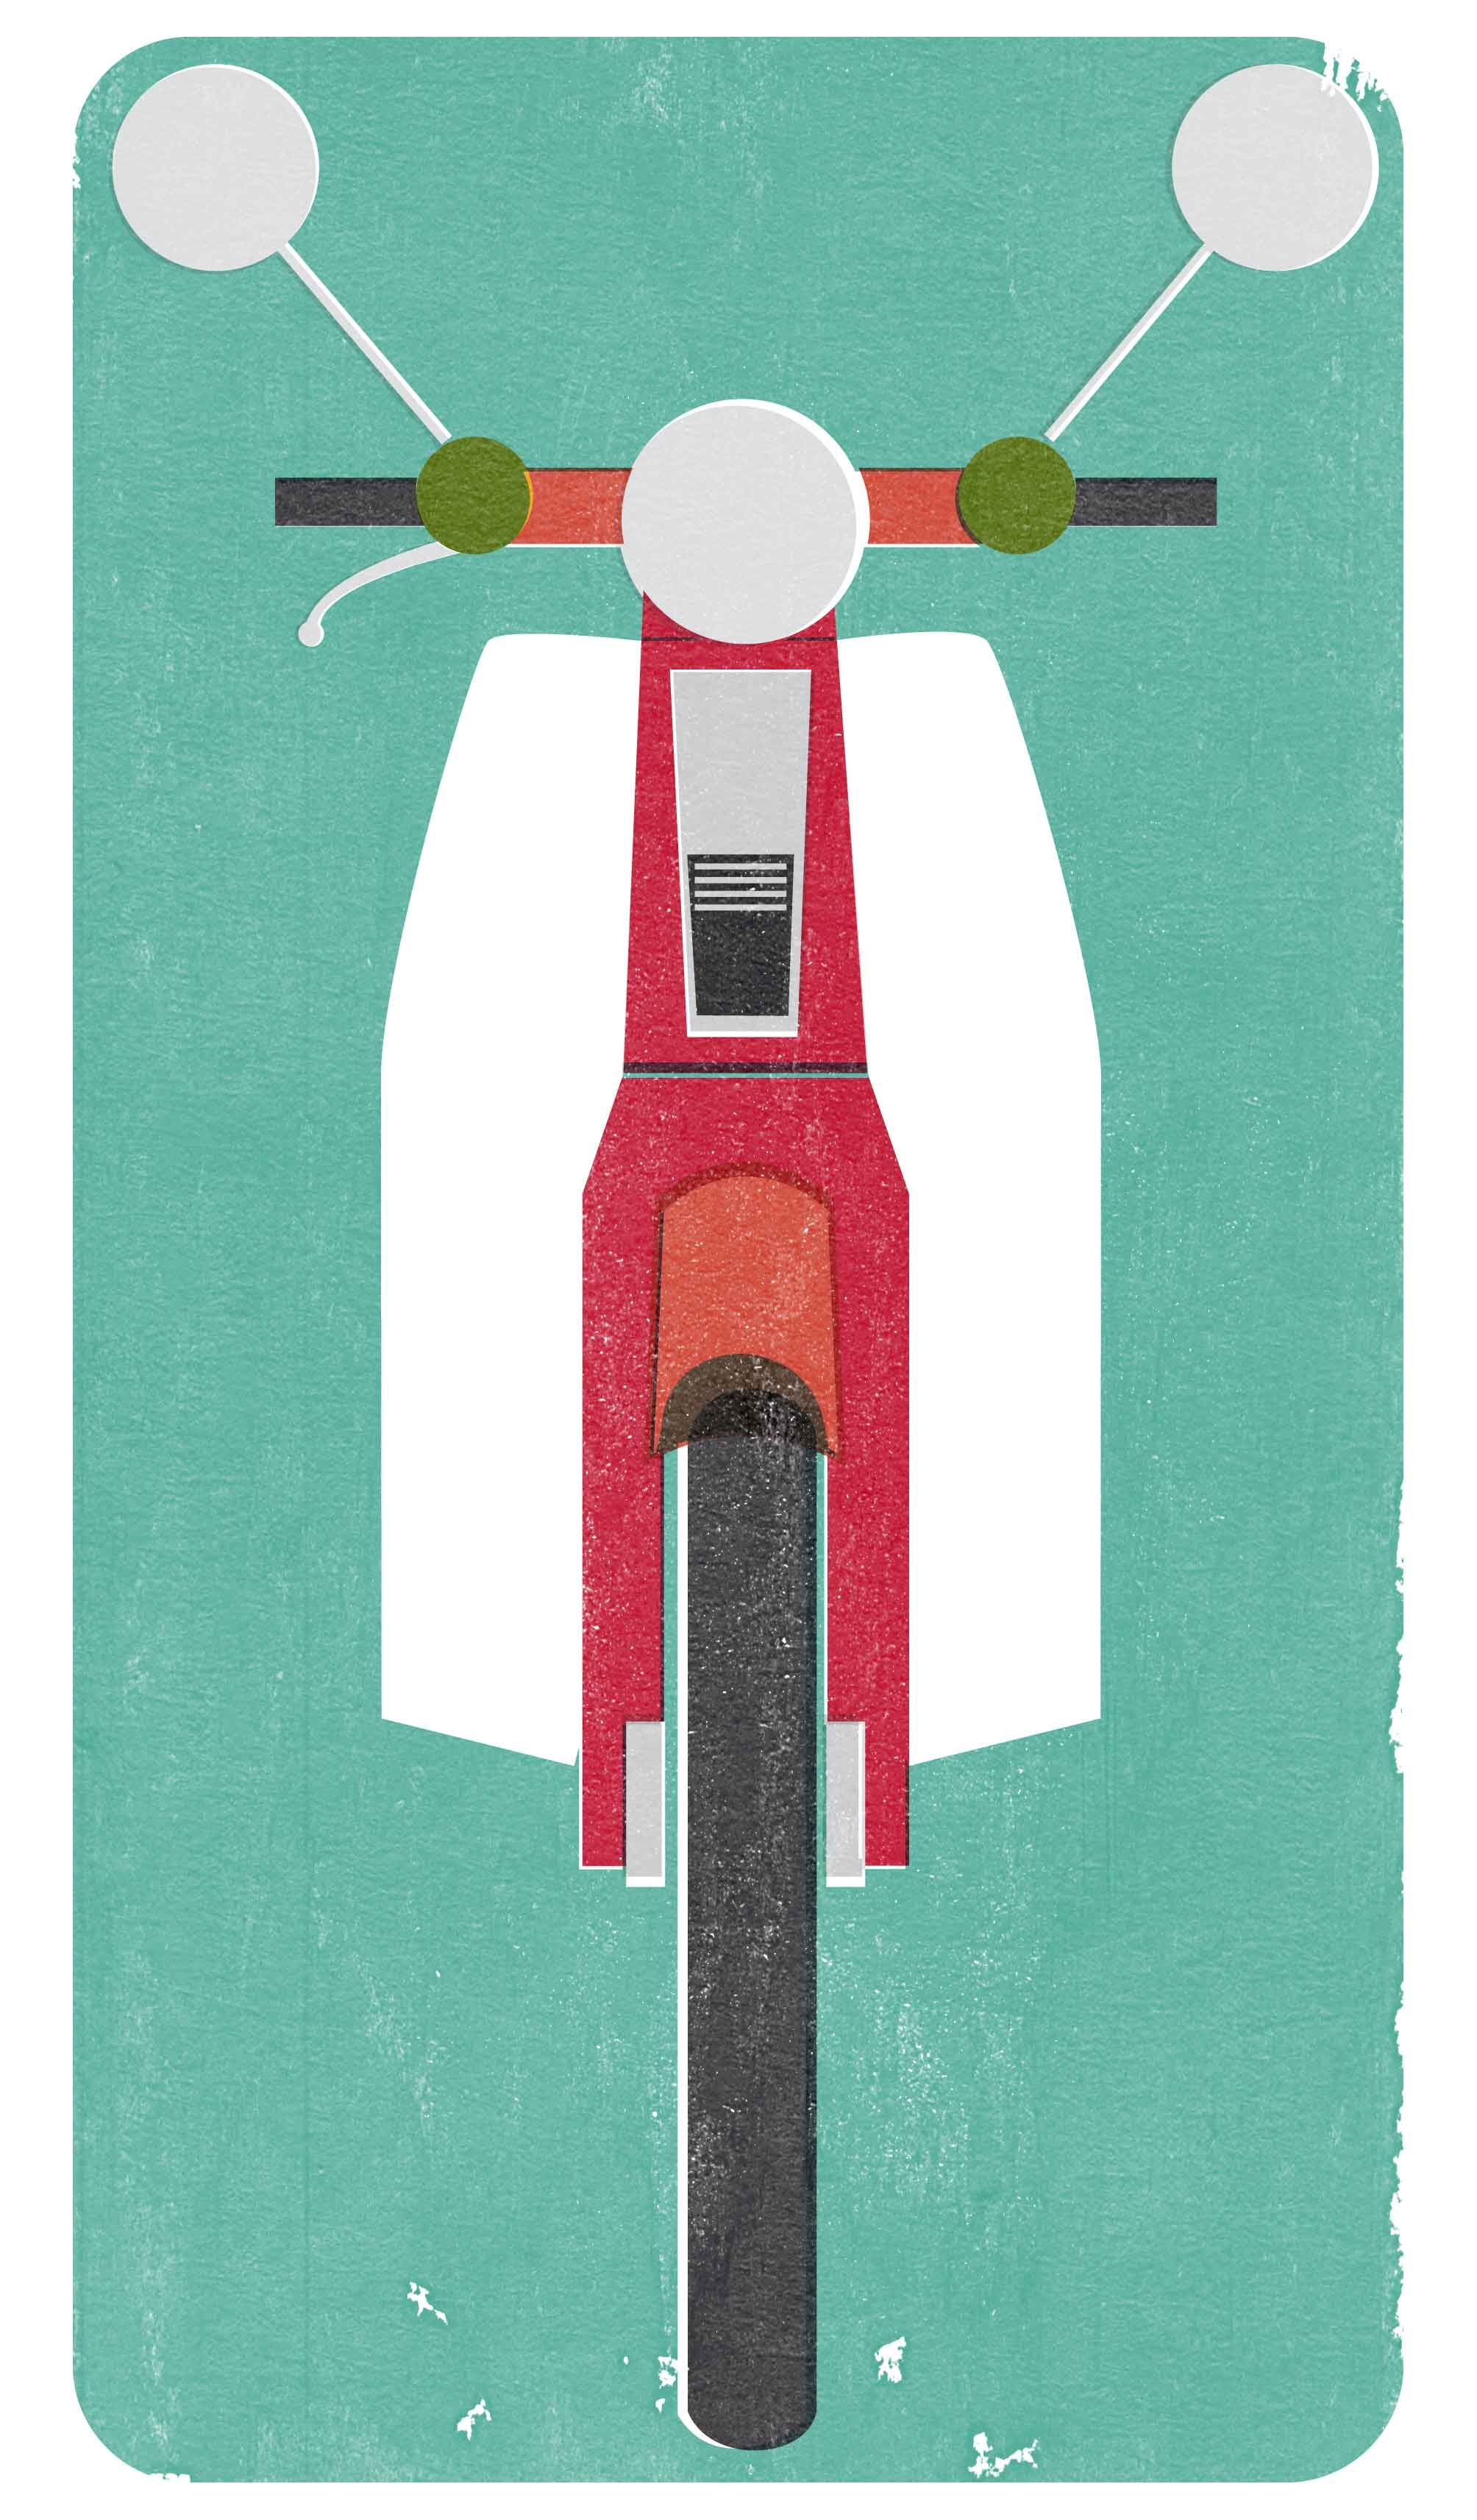 honda super cub. econo power. by DQ Wish I could find where to ...